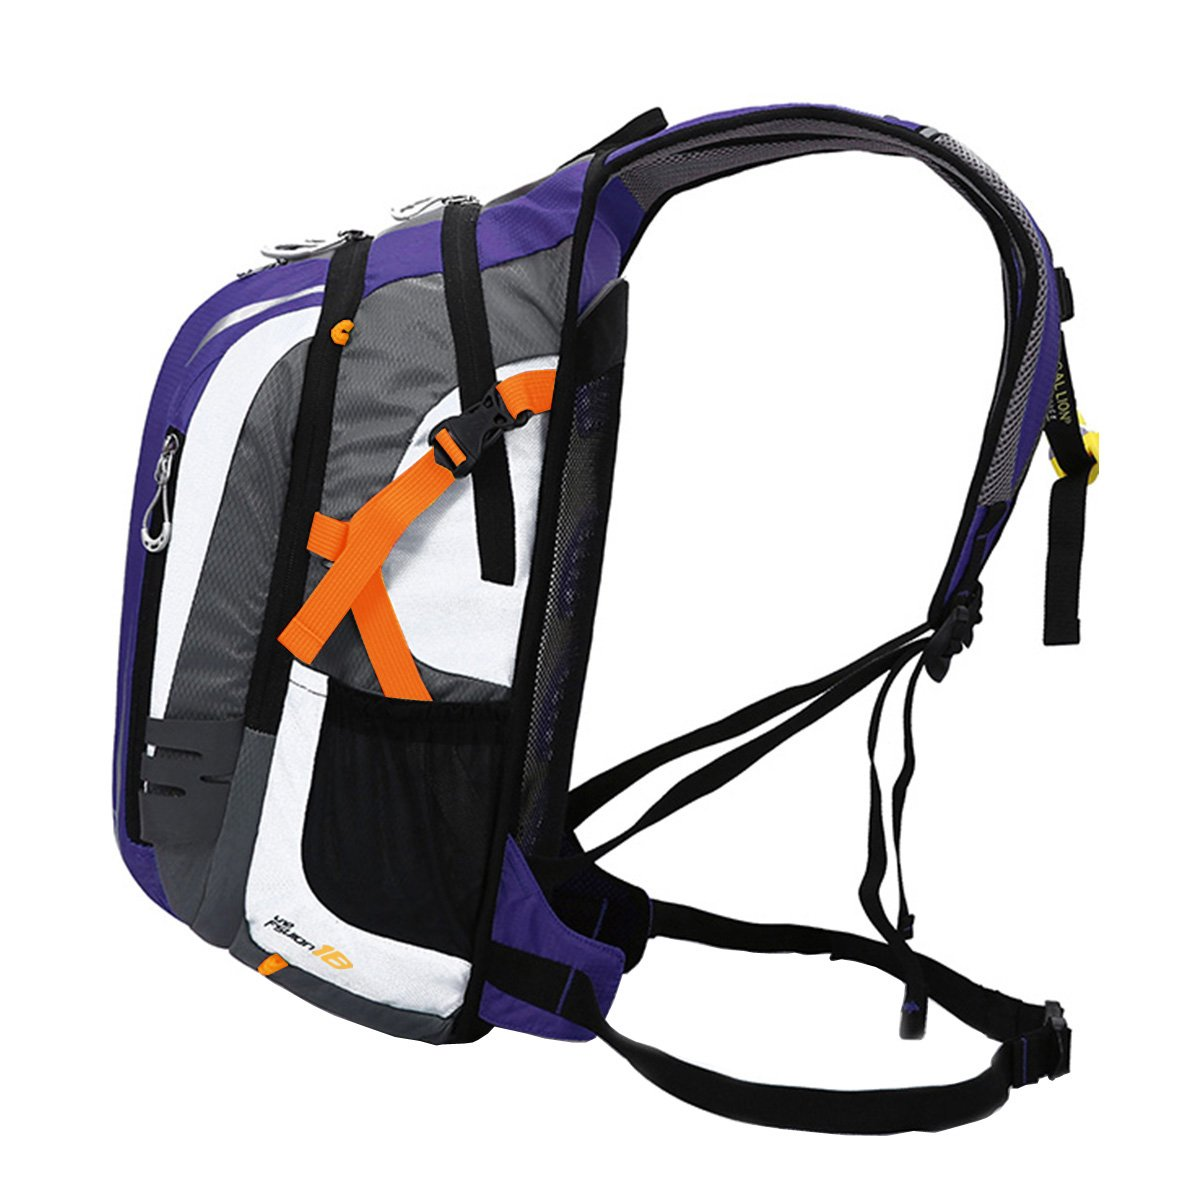 Outdoor Sports Cycling Hiking Camping Travel Daypack, Water resistant, 18L(purple) by YOGOGO (Image #3)